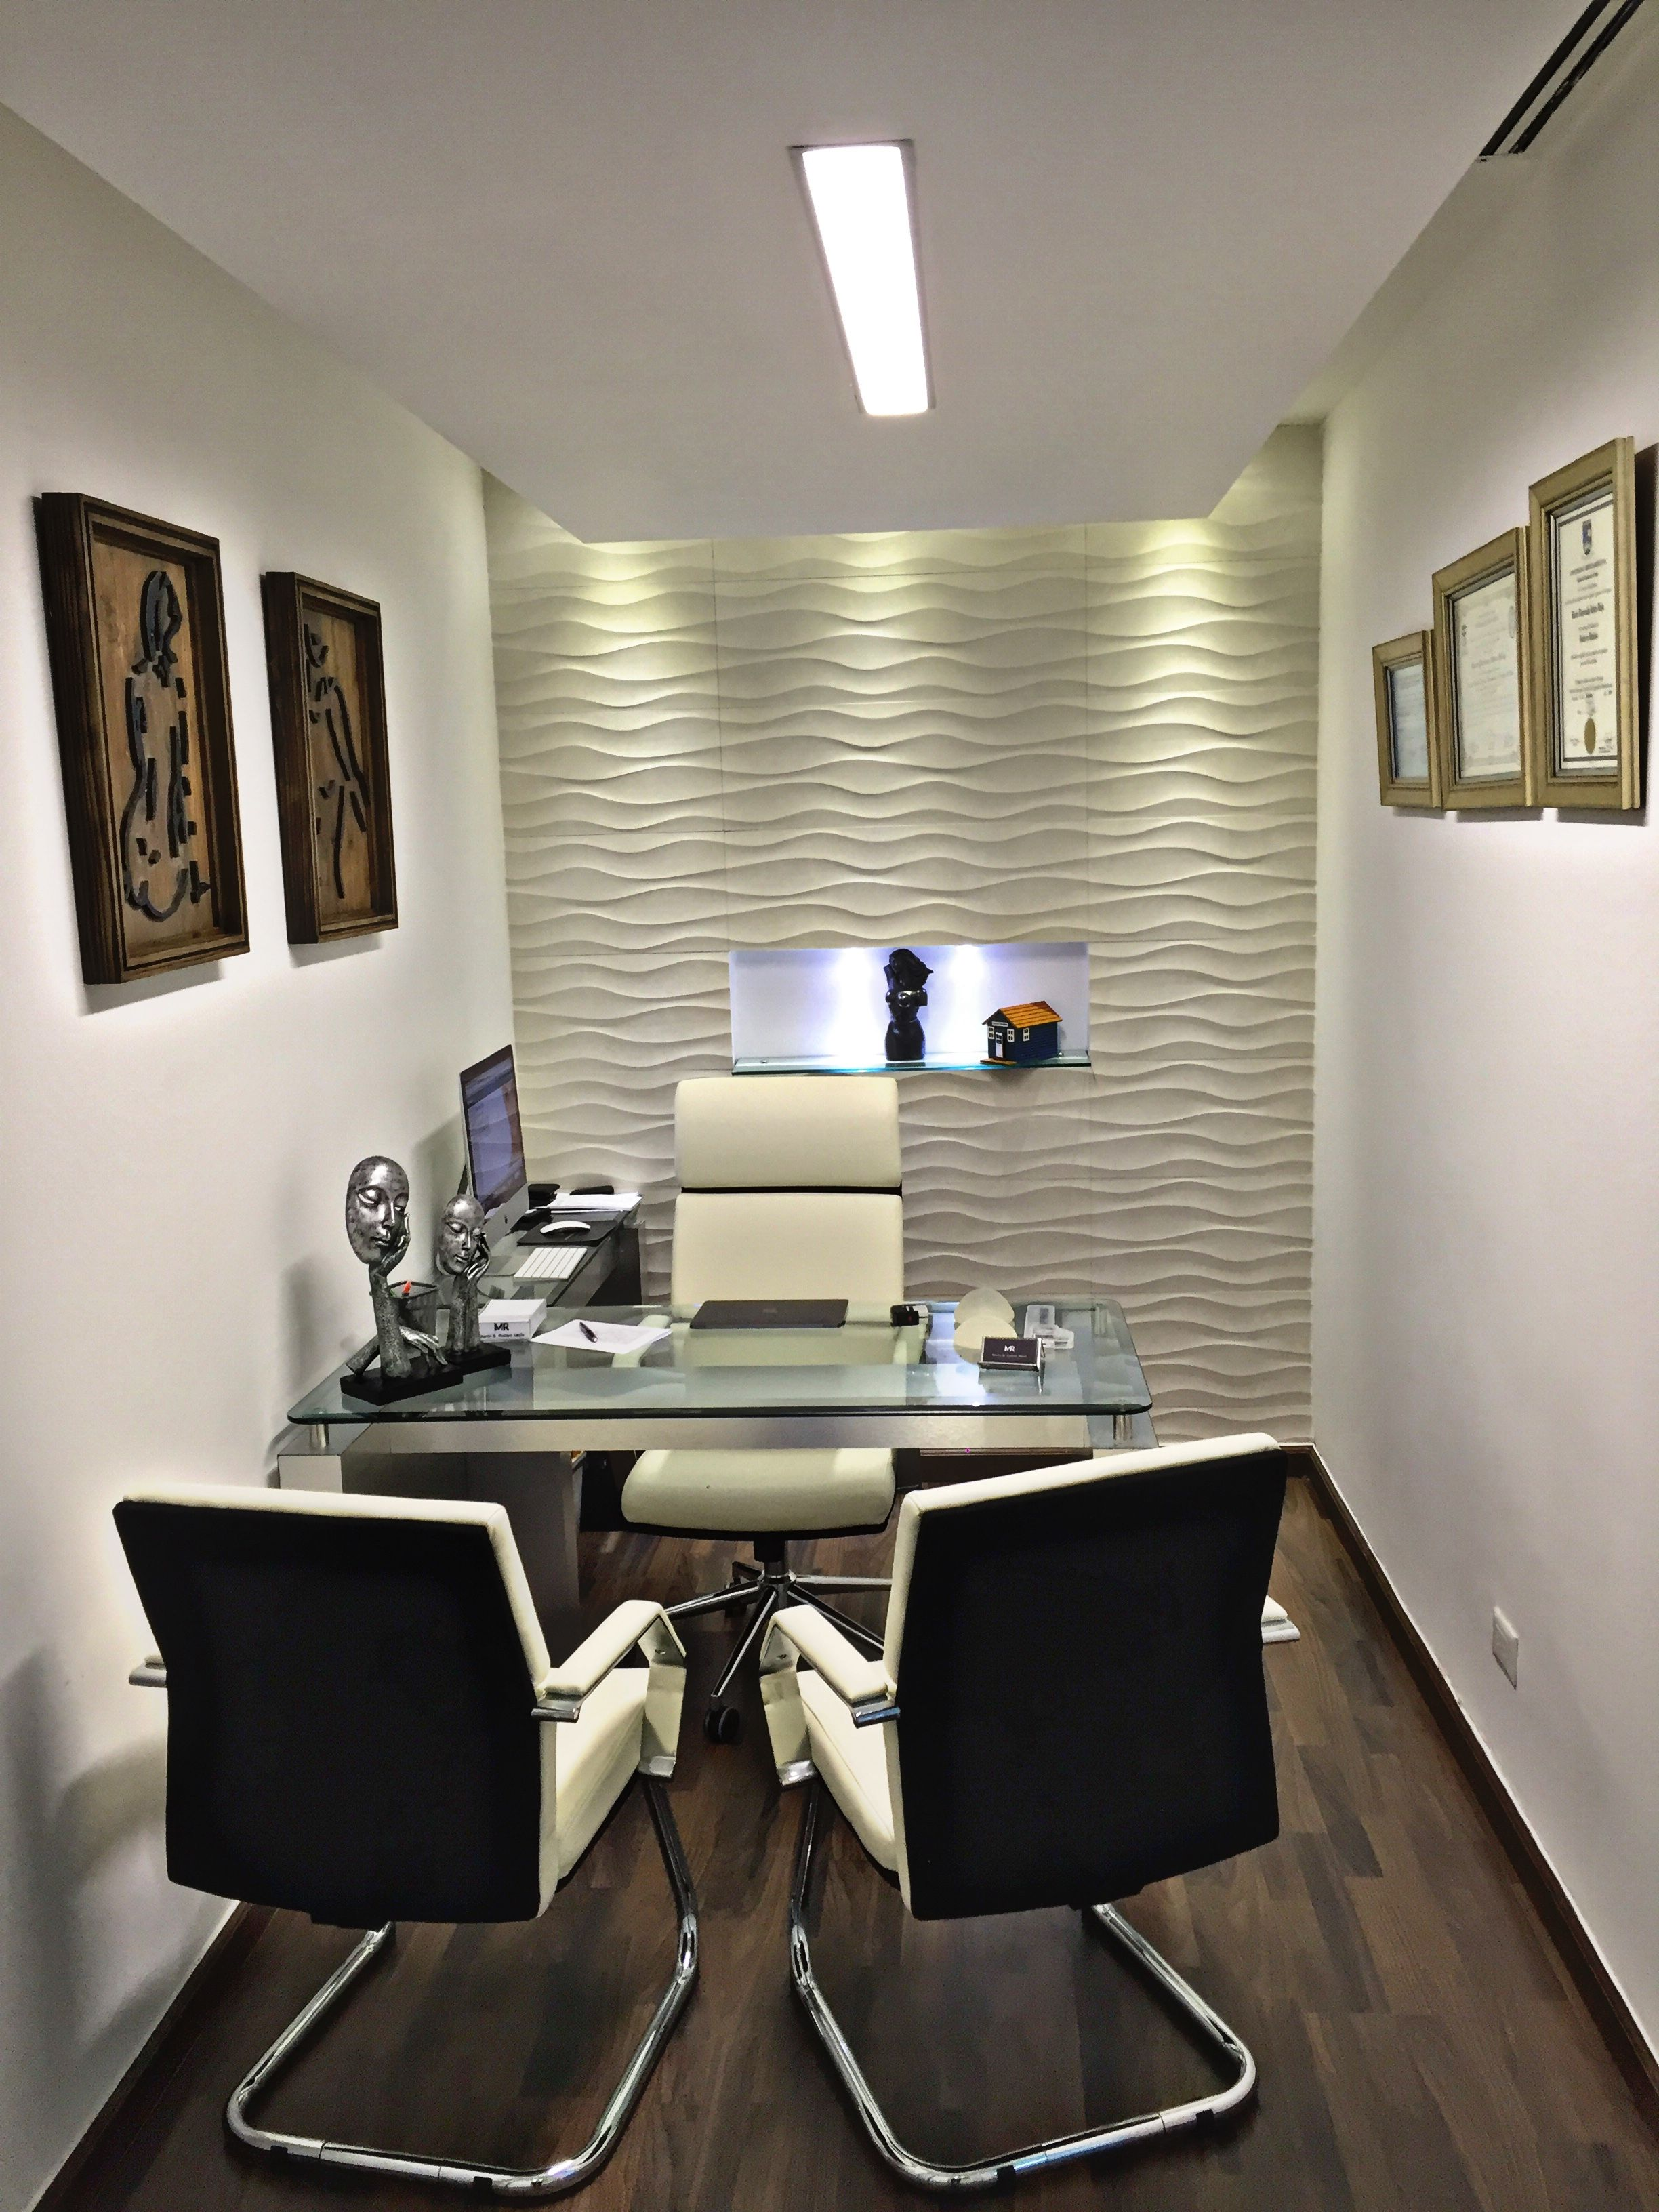 10x10 Office Design Dominican Republic What Is The Best Thing To Do